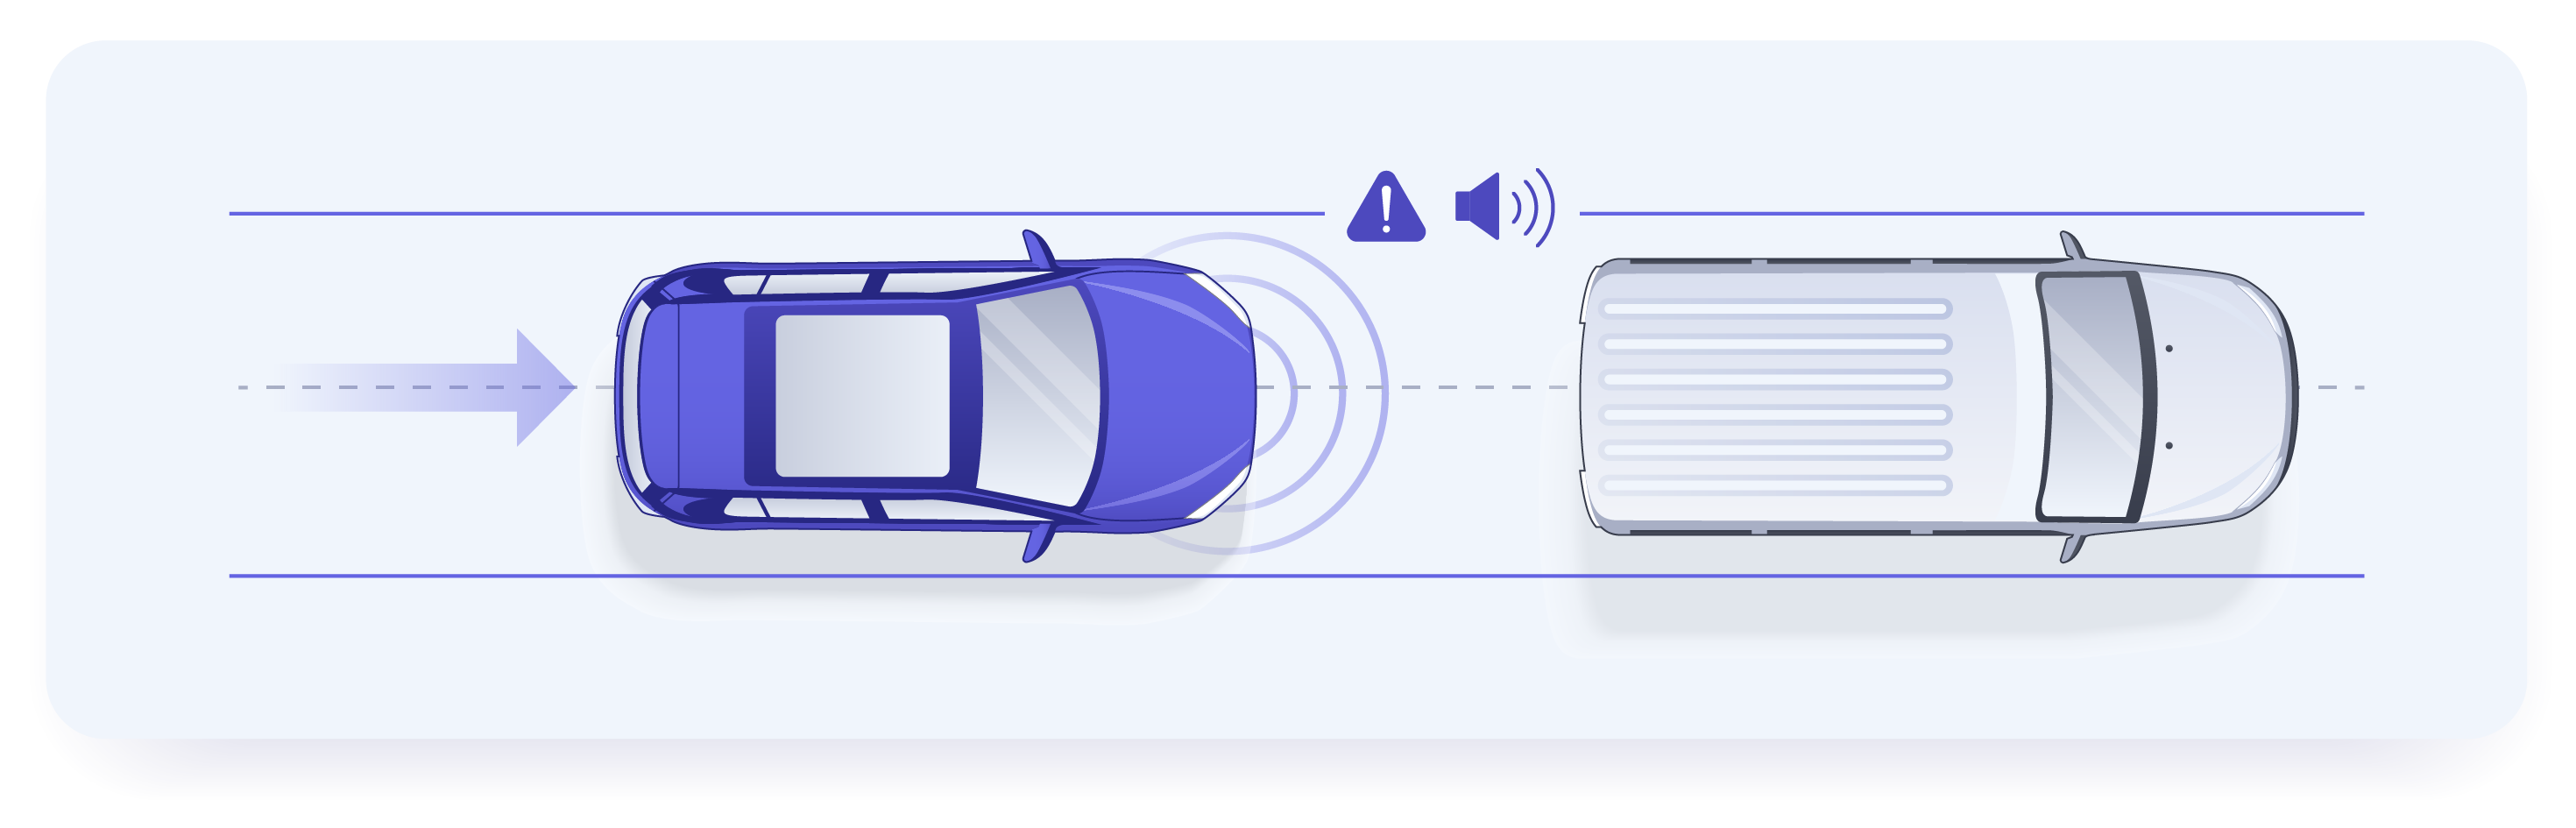 Avinew ADAS decoder: Forward Collision Warning FCW